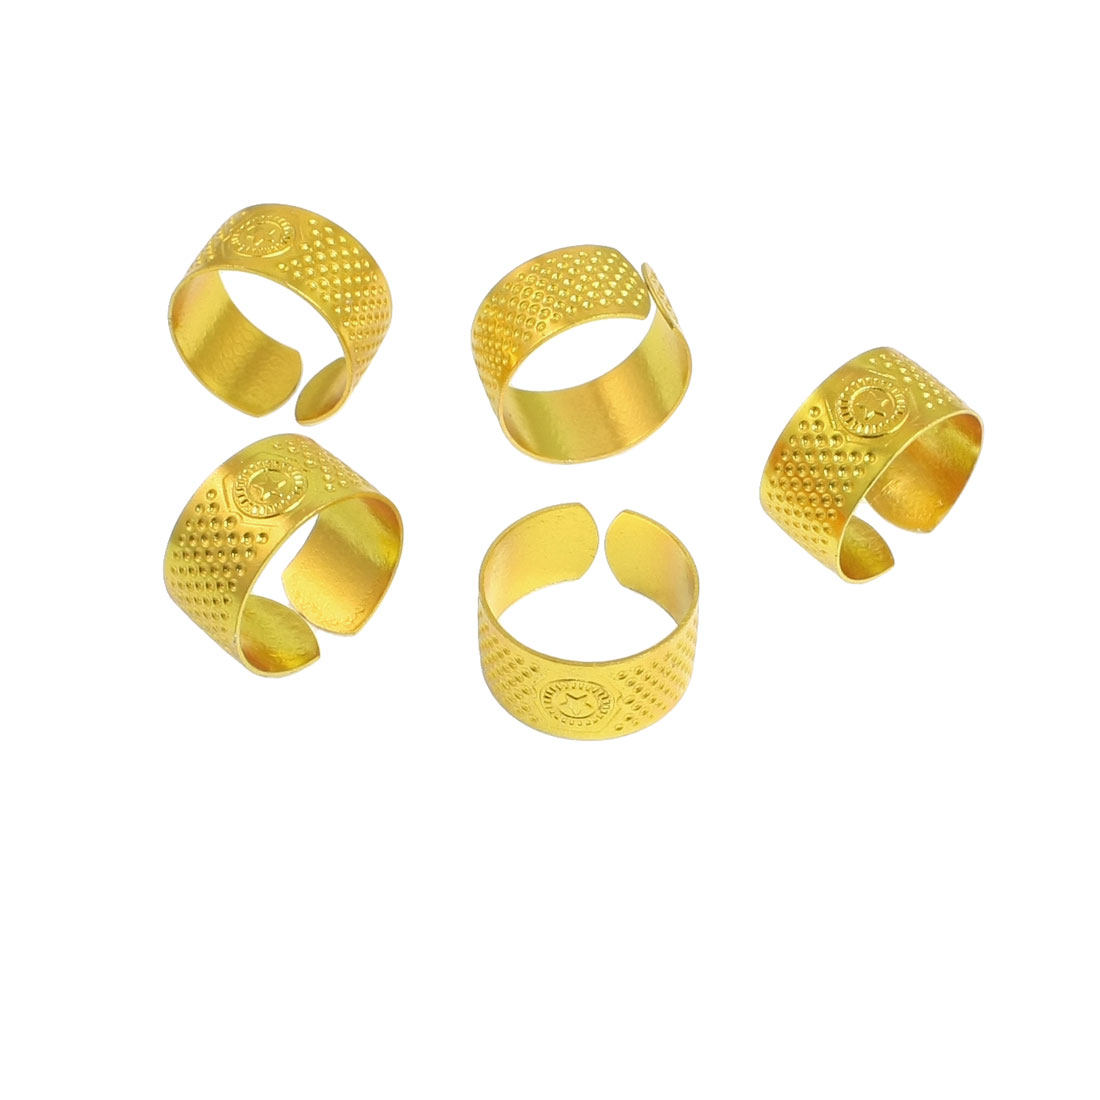 5 Pcs 21mm Diameter Gold Tone Metal Ring Reeded Thimble for Tailoring Sewing